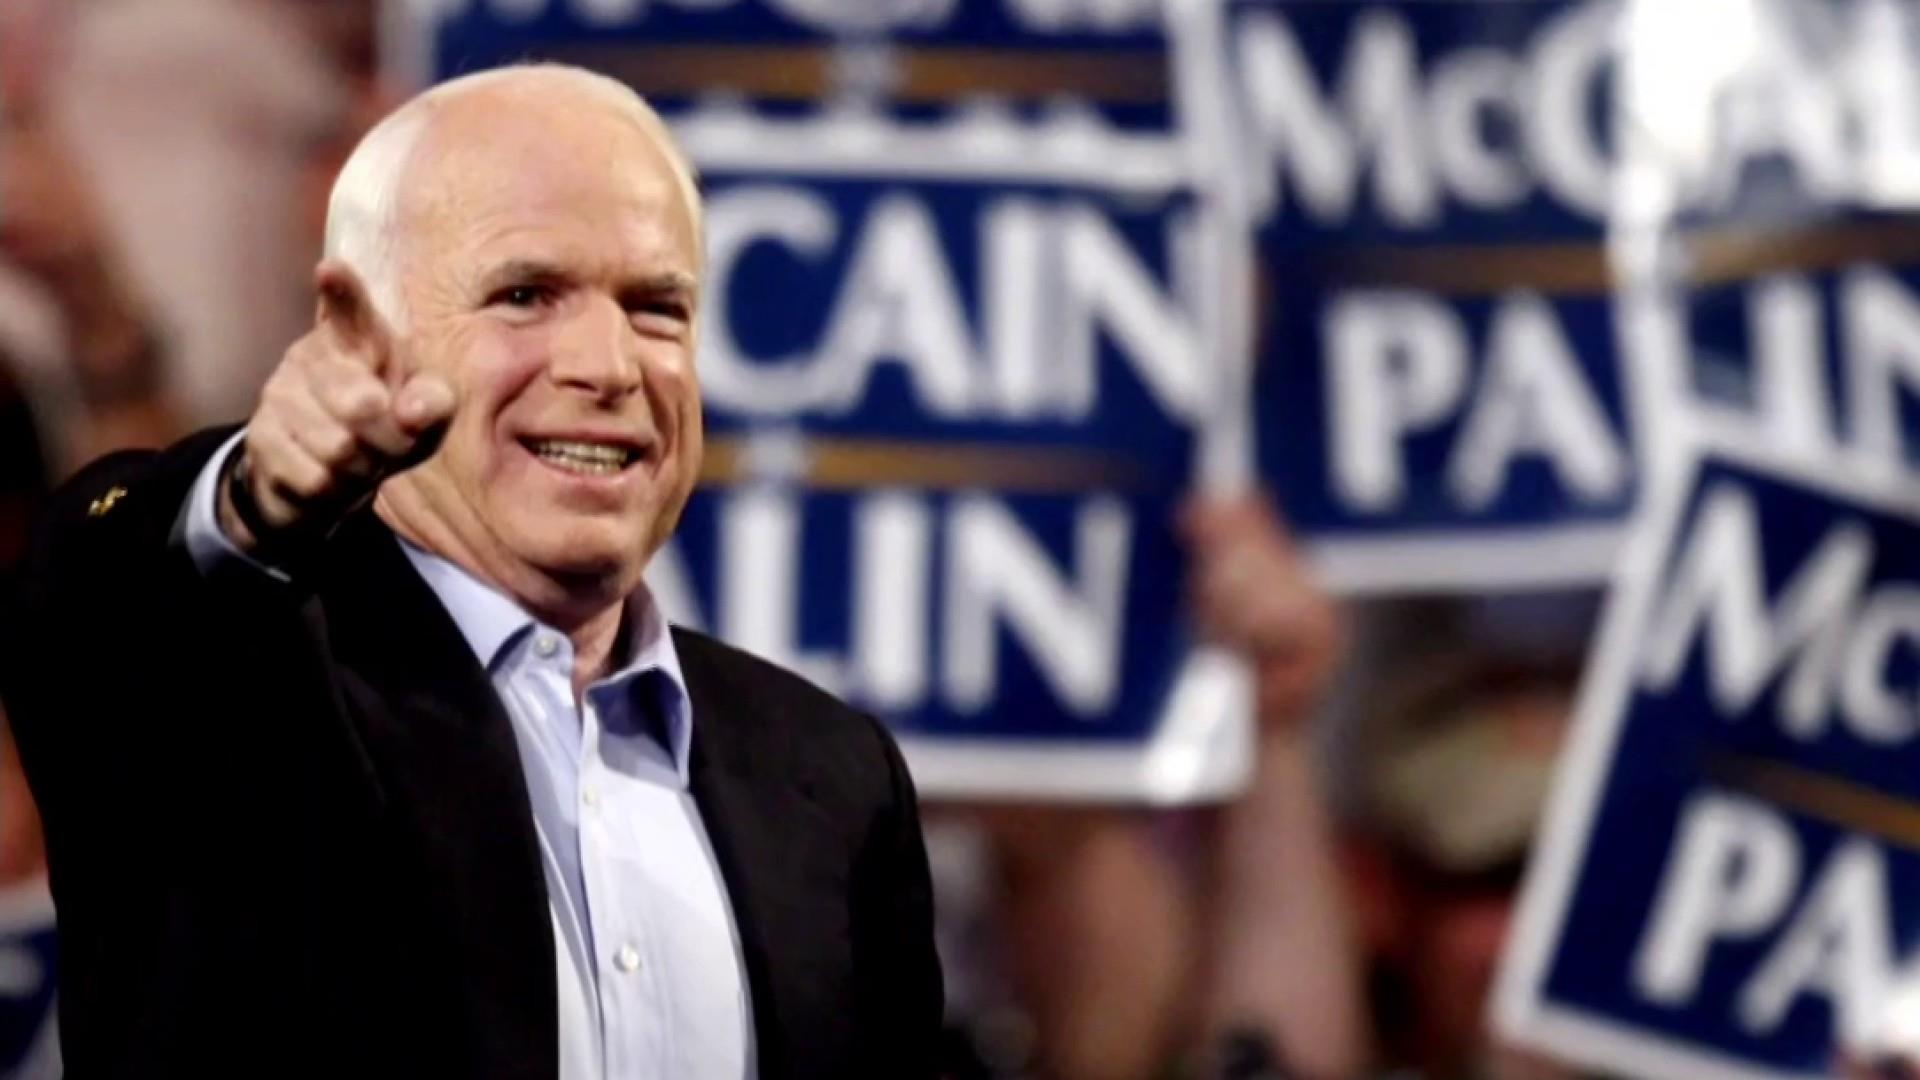 Why John McCain's legacy resonates now more than ever